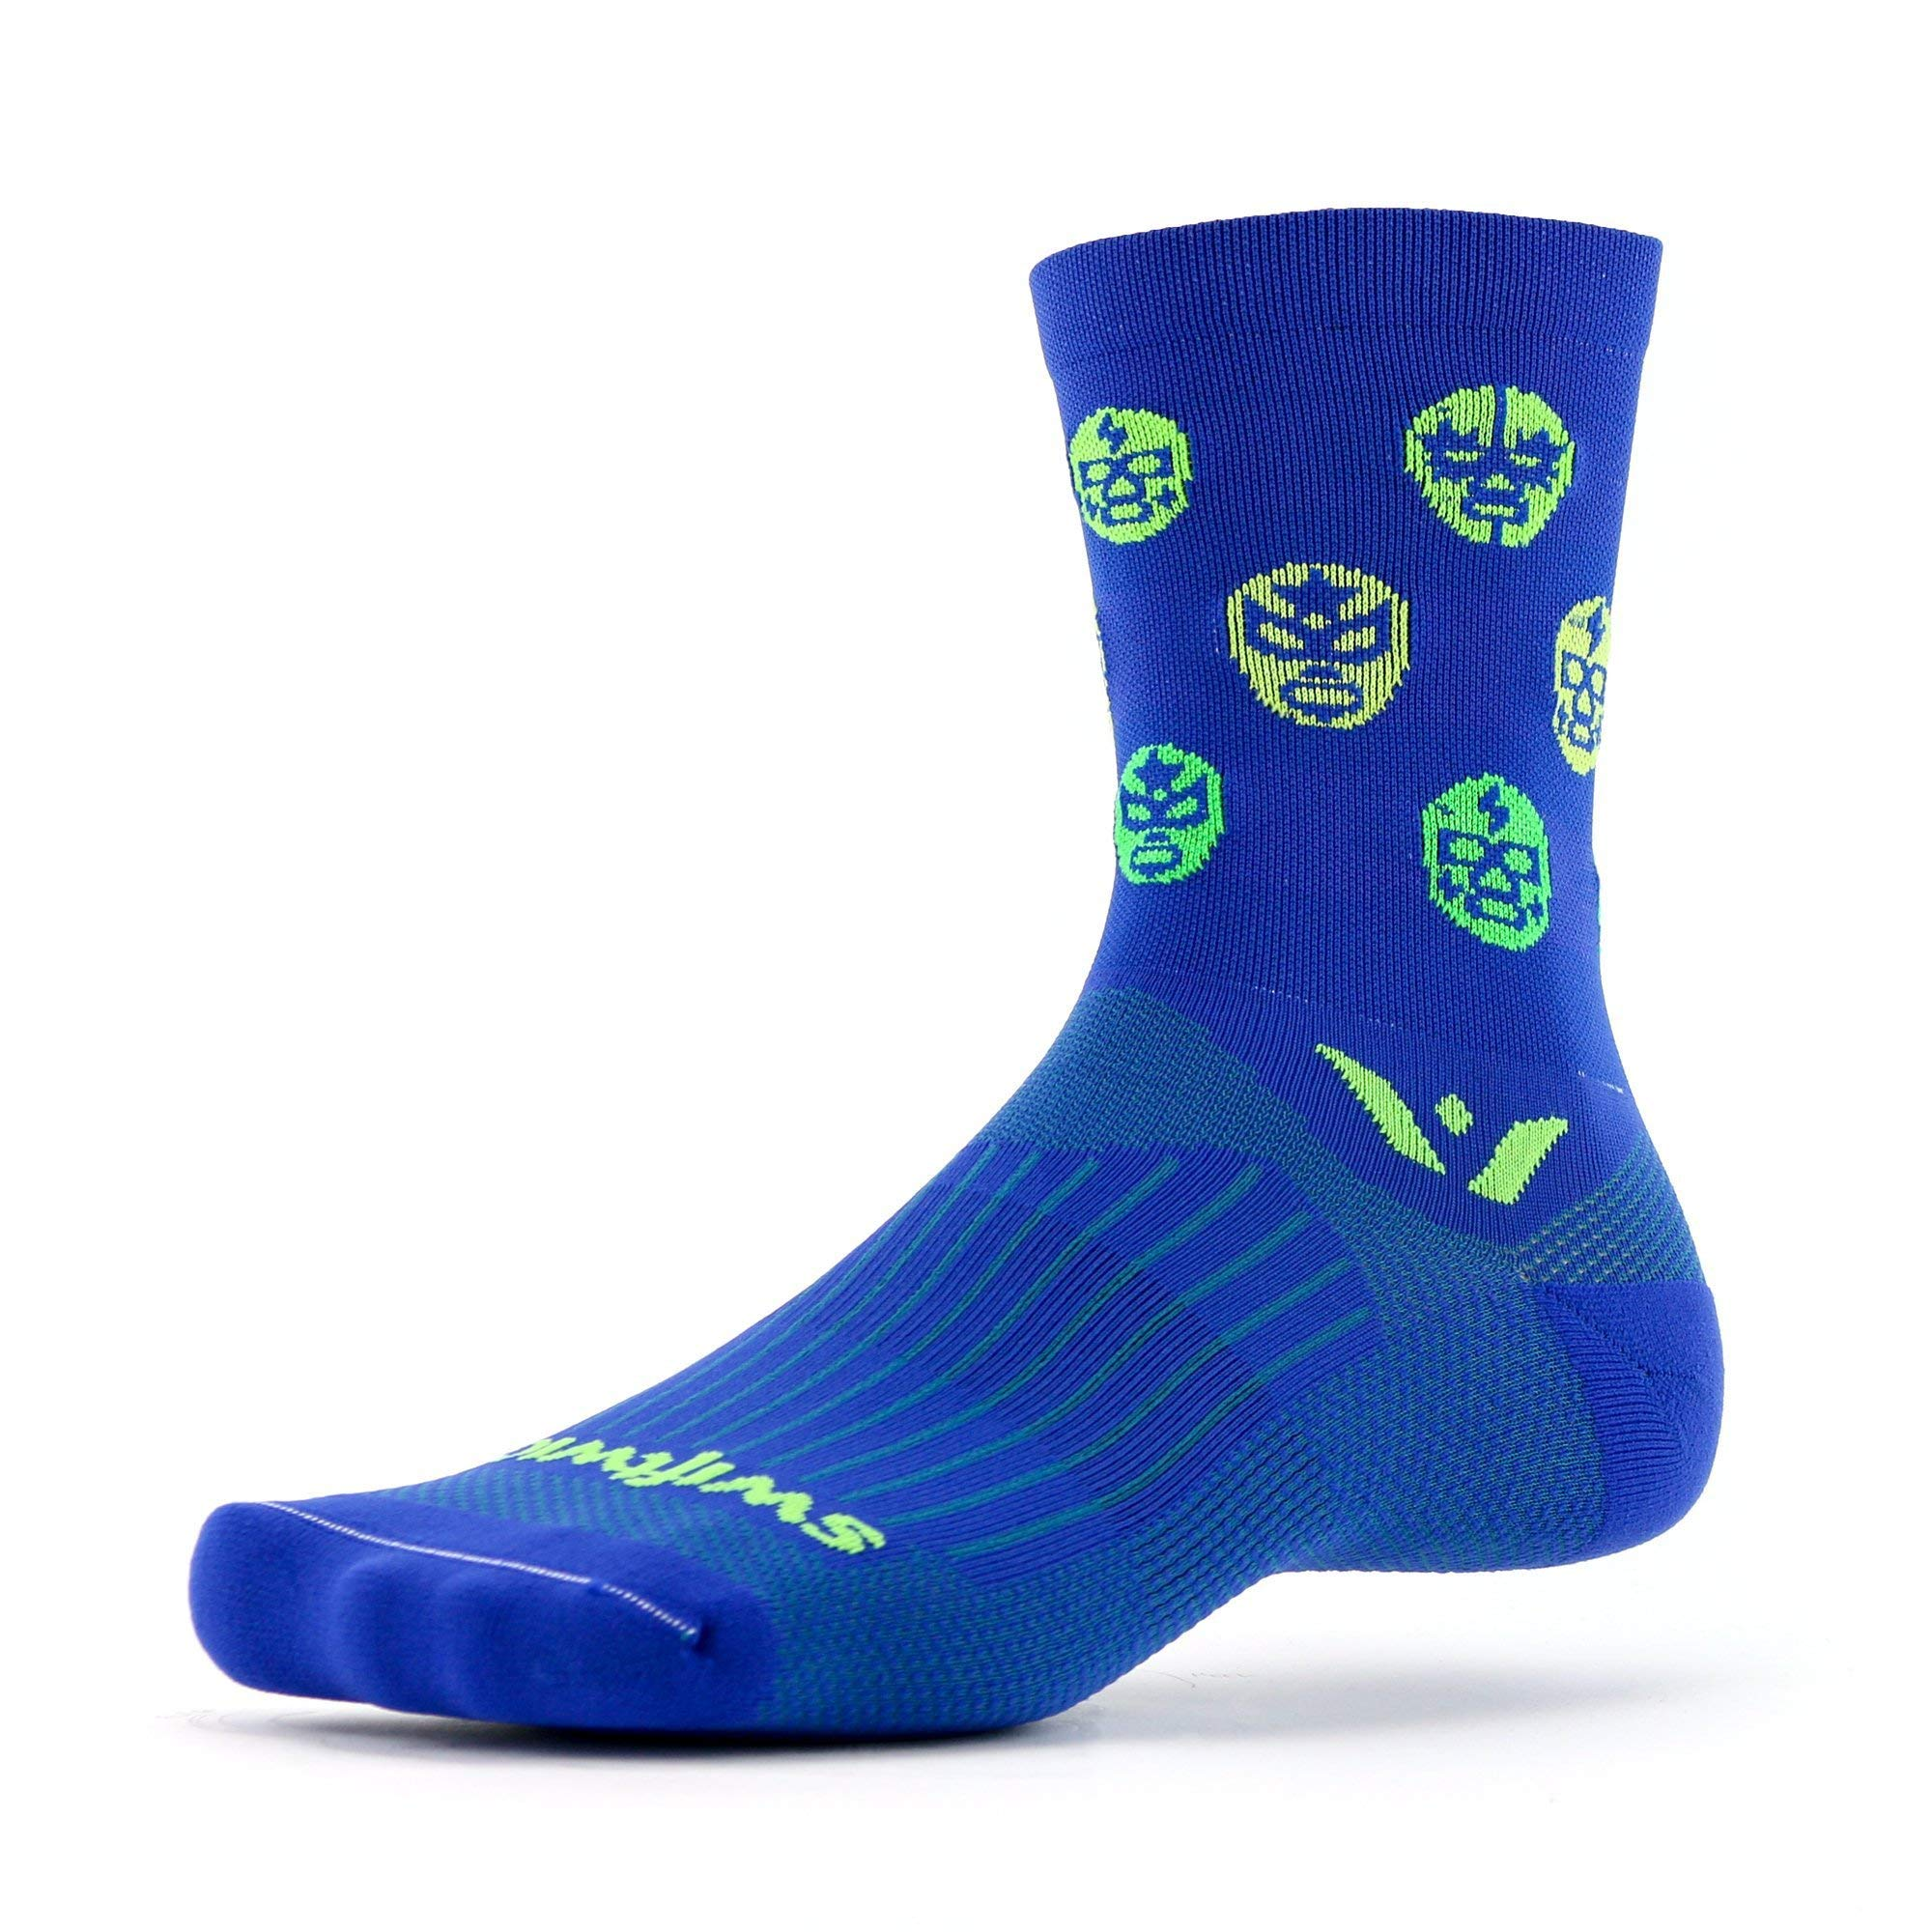 Swiftwick- VISION FIVE LUCHADOR Running & Cycling Socks, Performance Crew Socks